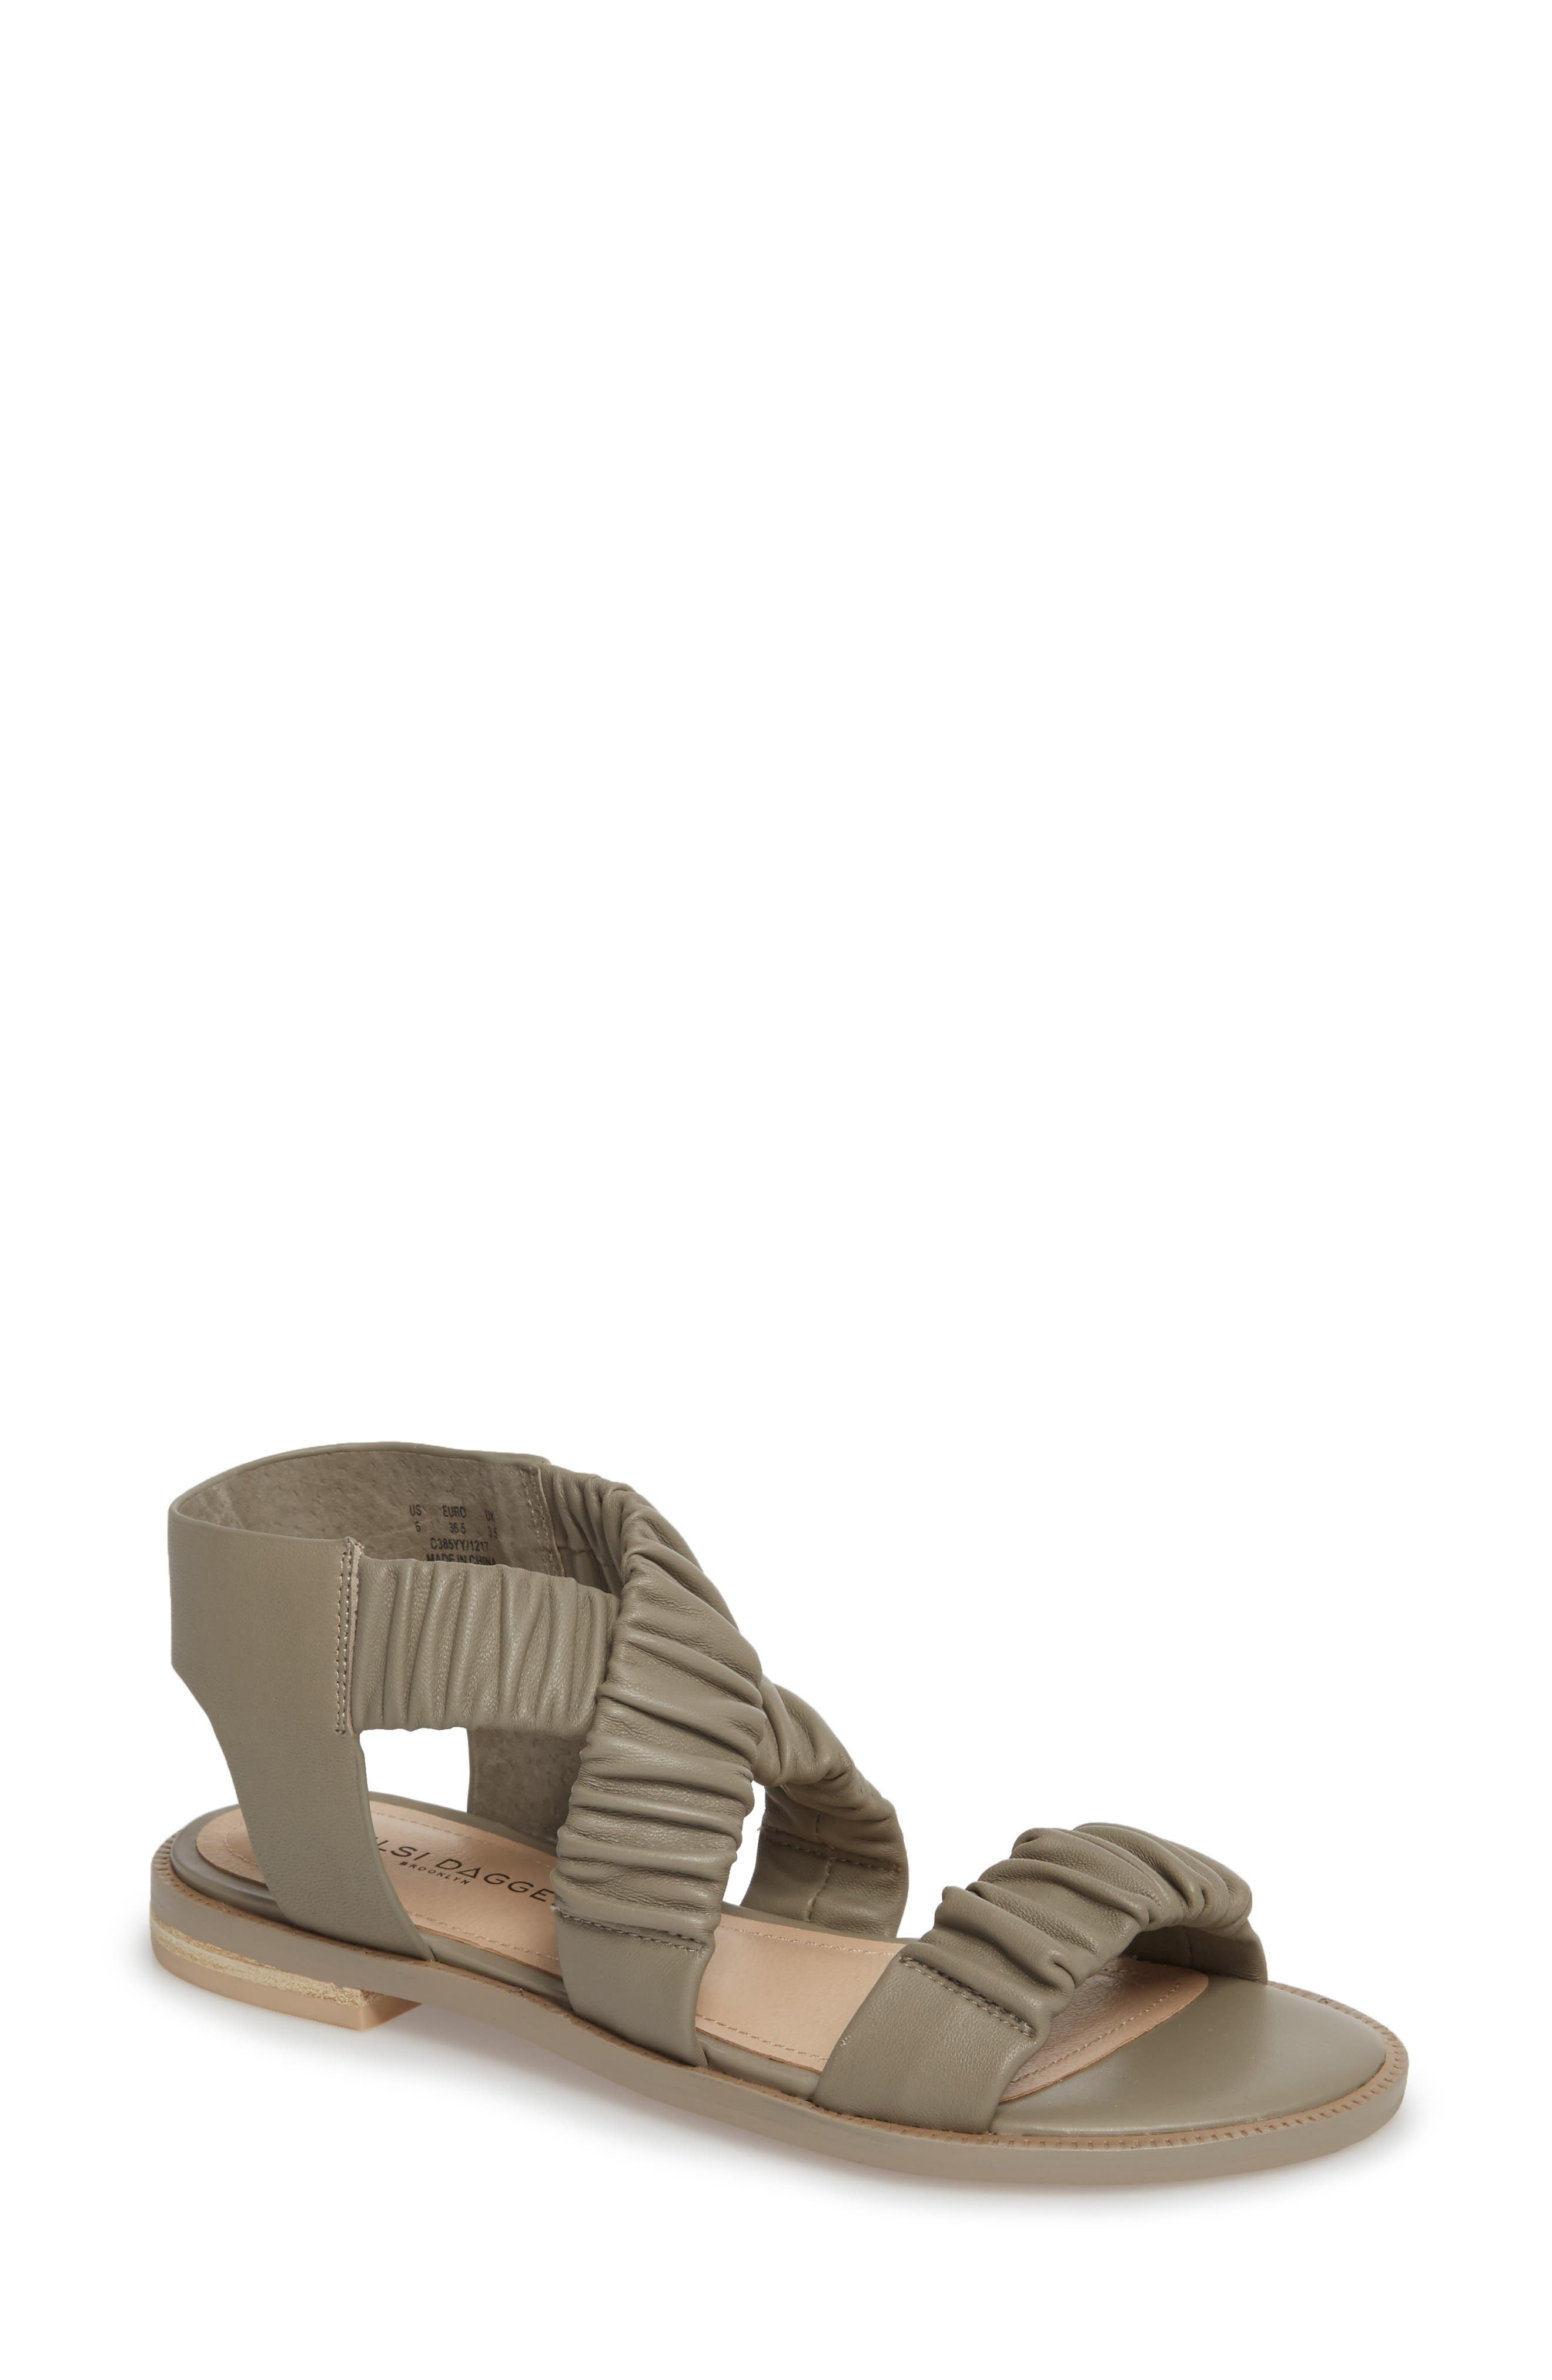 Ryder Pleated Flat Sandal,                             Main thumbnail 2, color,